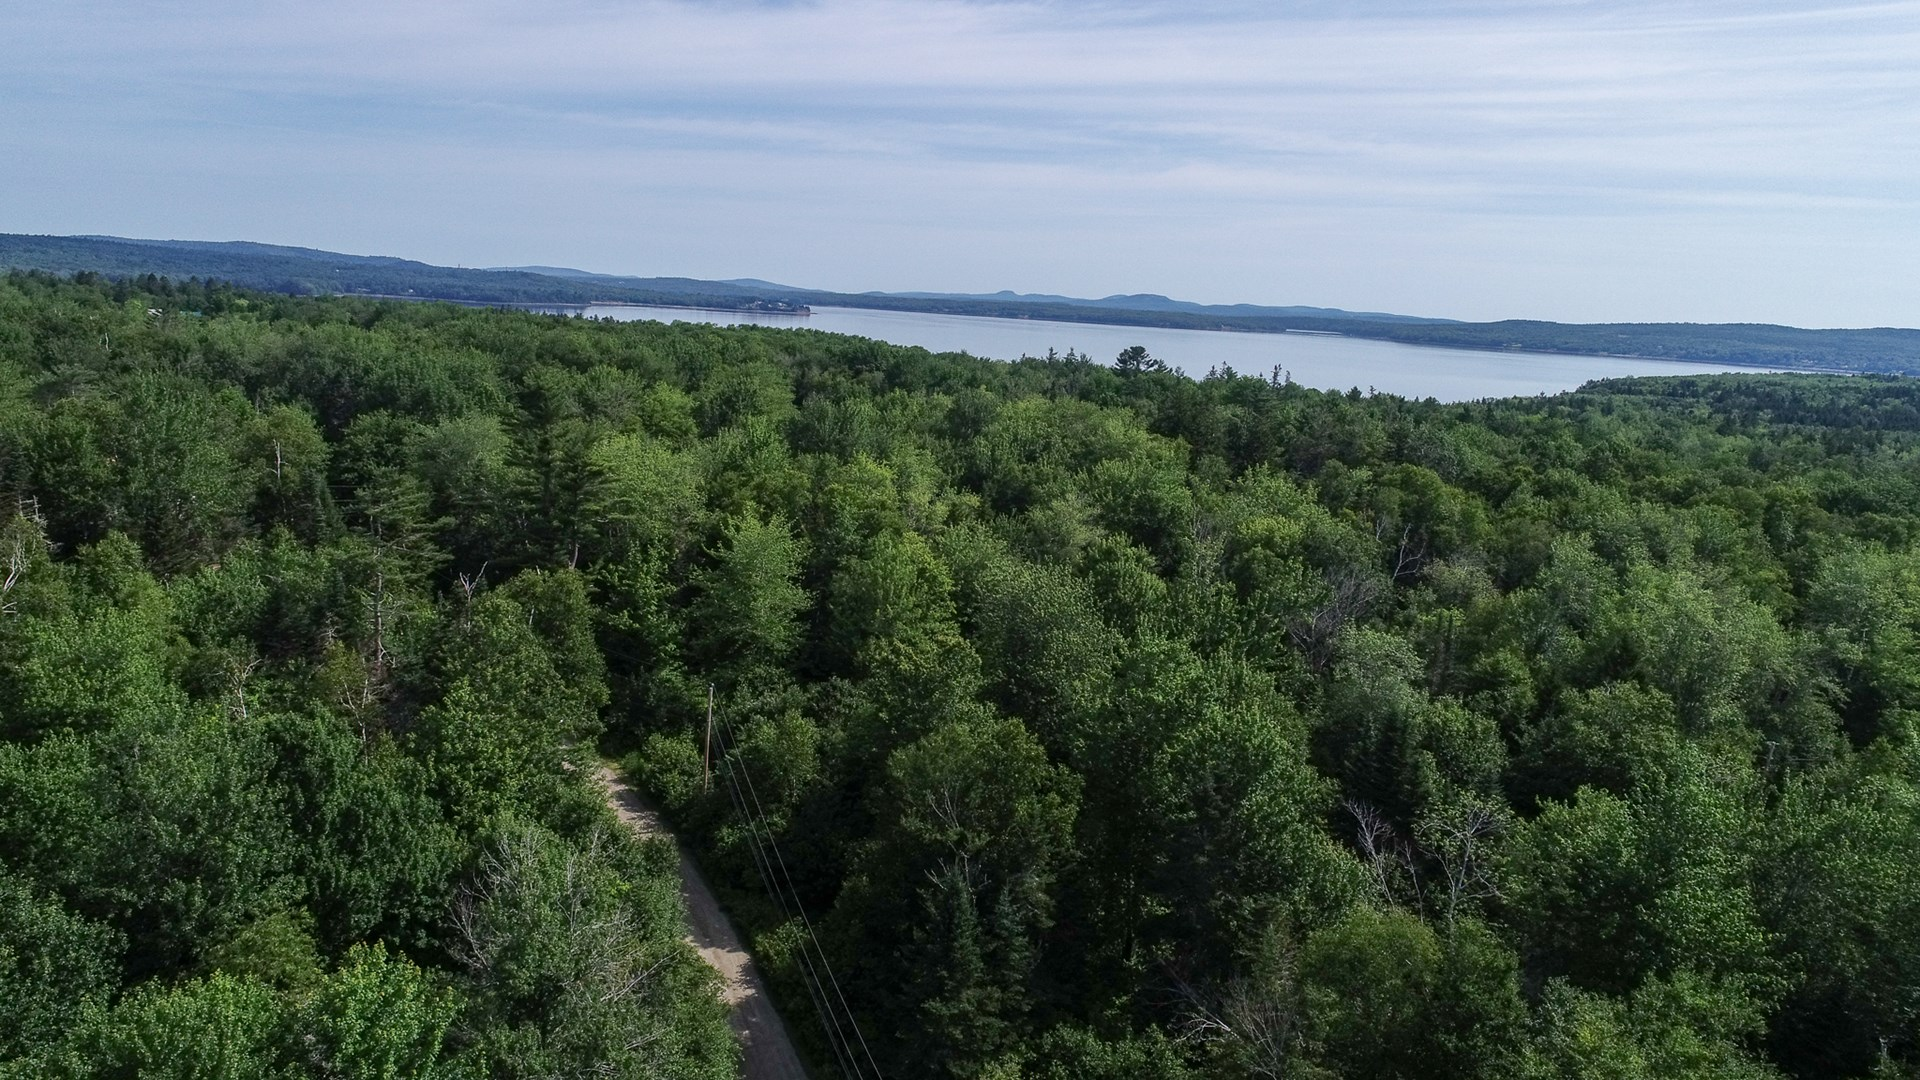 Land for sale in Stockton Springs, Maine